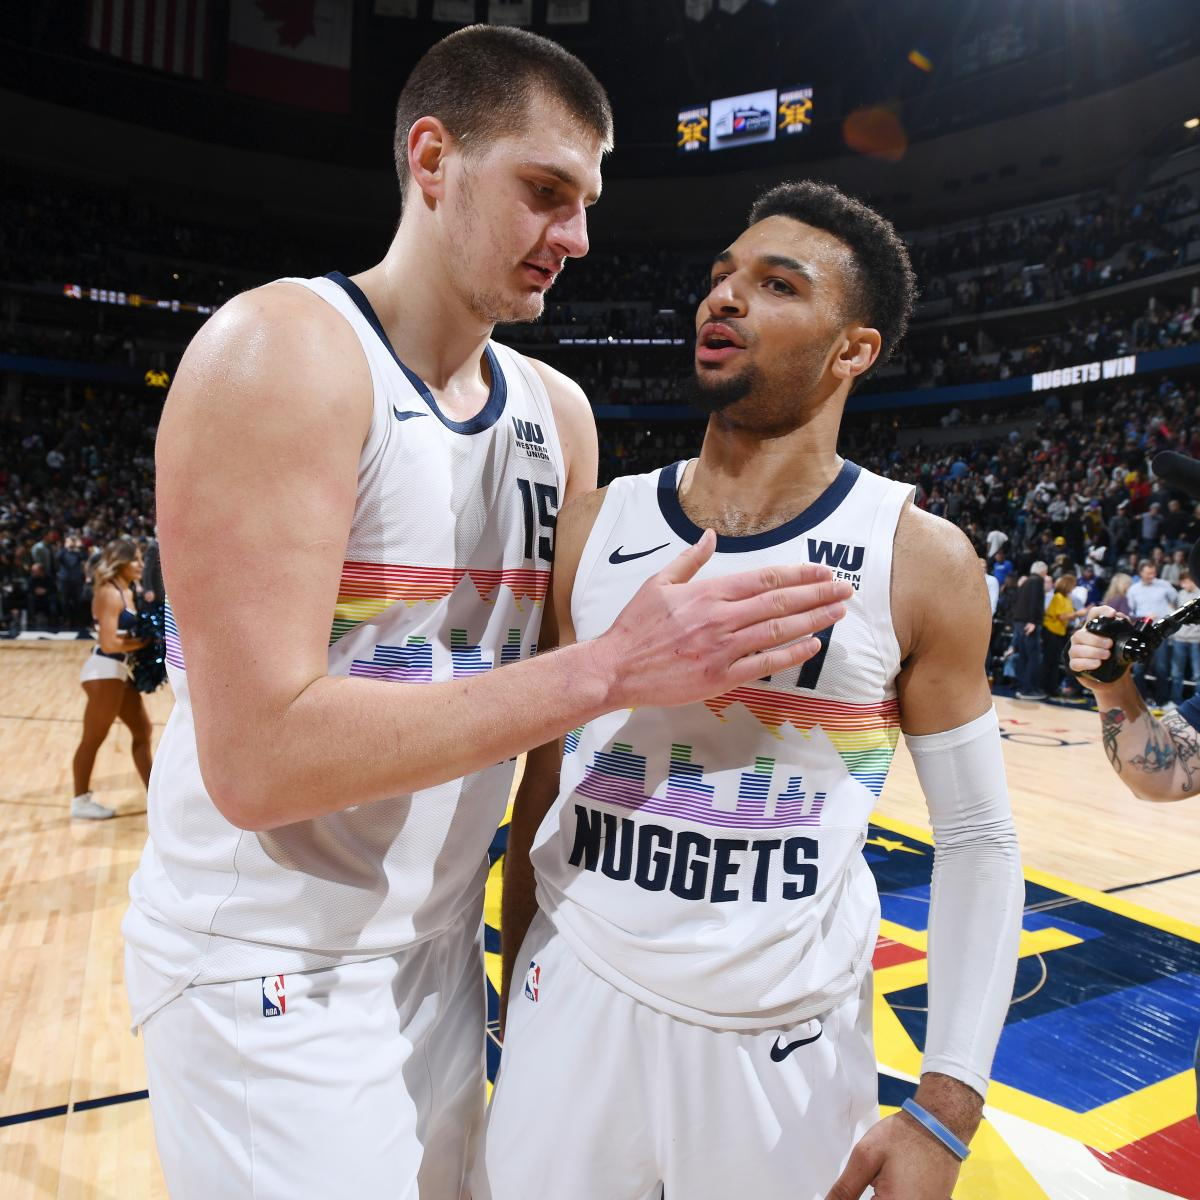 Nuggets Playoff Tickets 2019: Nuggets Clinch NBA Playoff Berth With Win Vs. Celtics